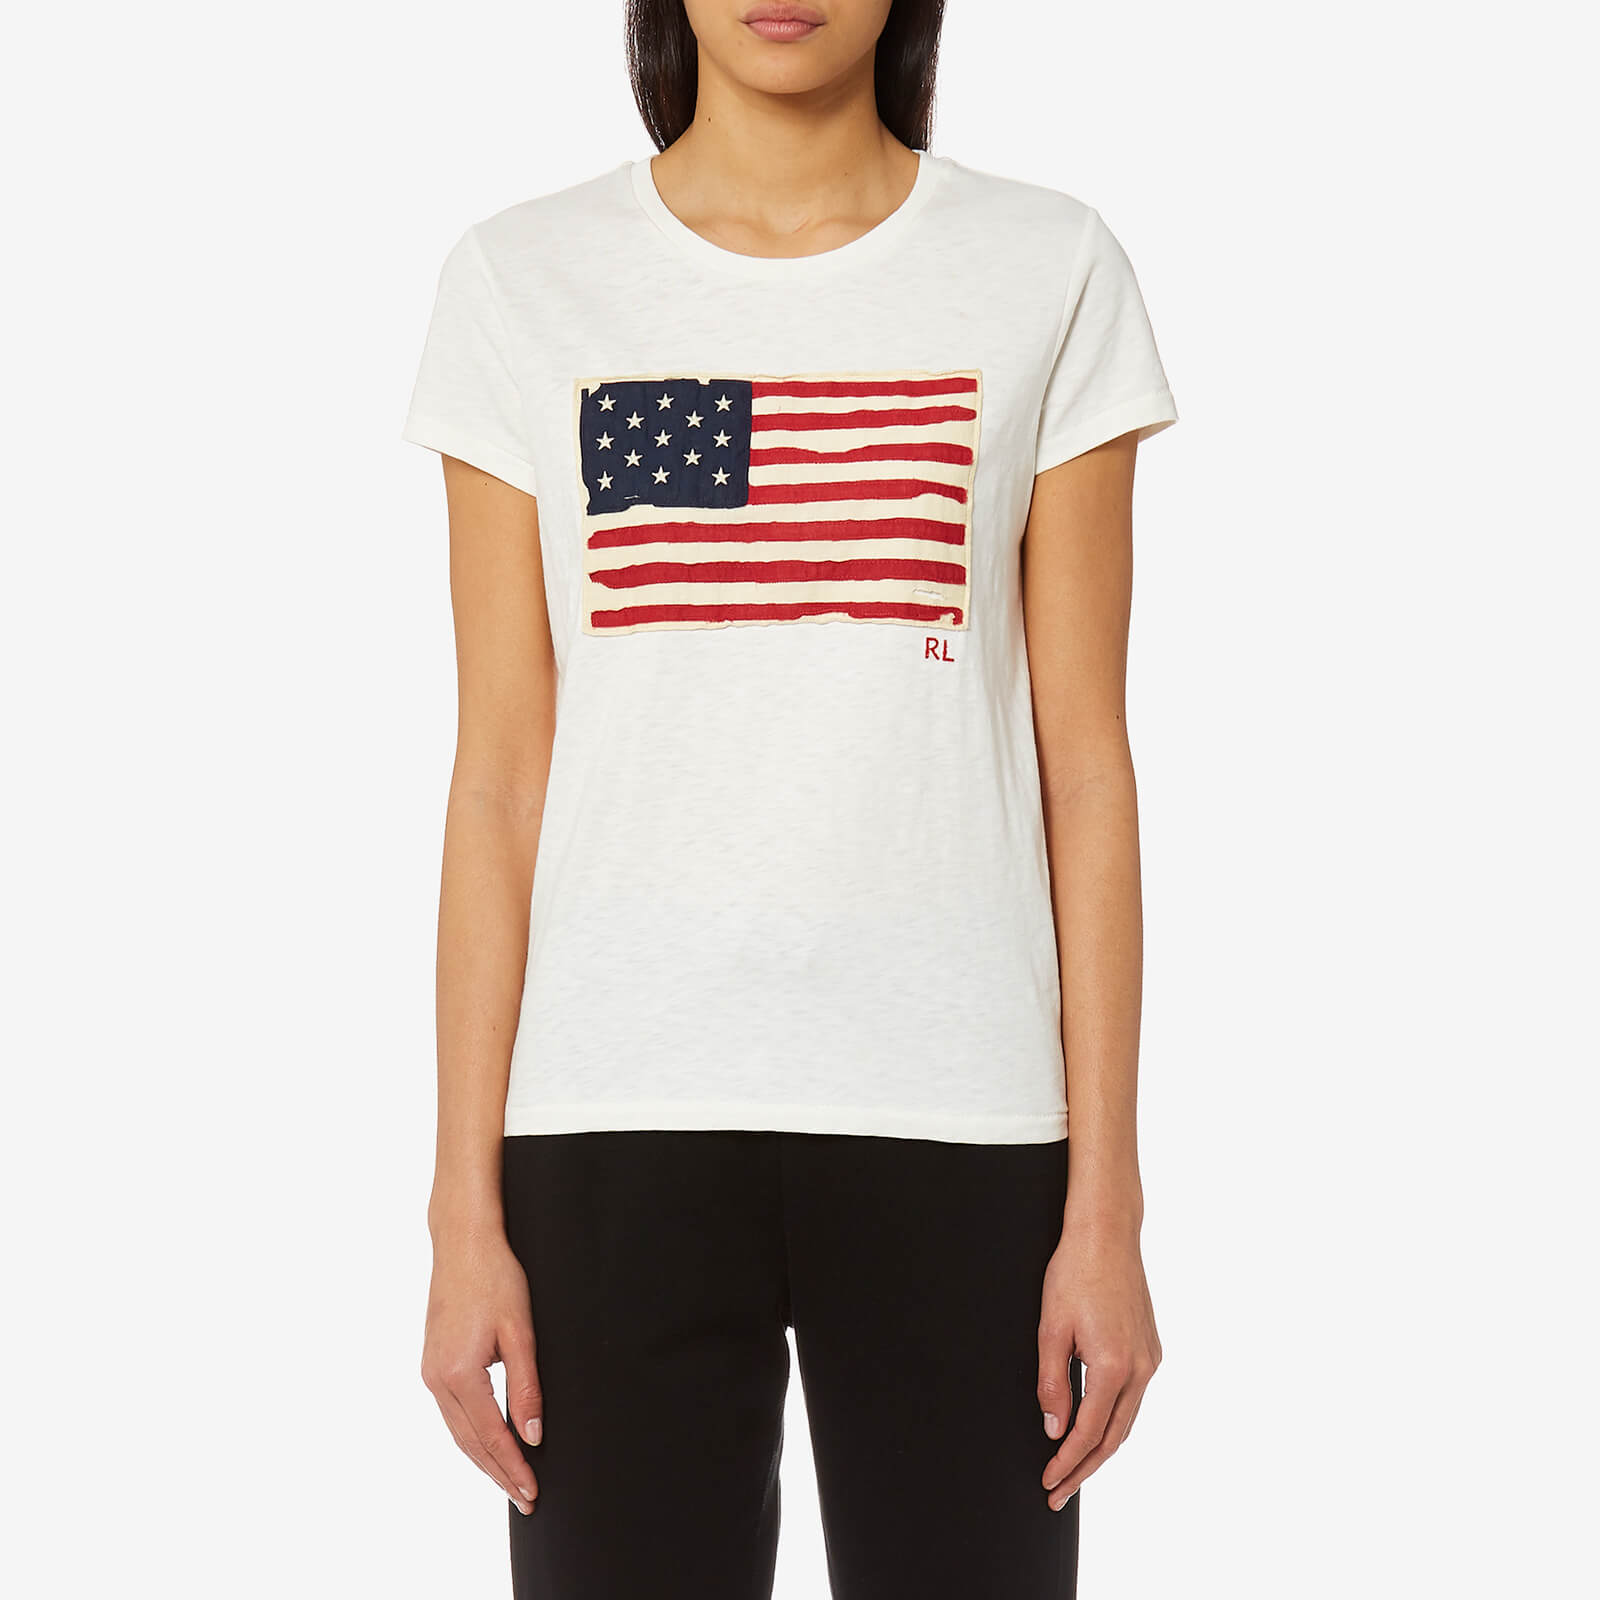 9e0d6615d4348 Polo Ralph Lauren Women s Flag T-Shirt - Cream - Free UK Delivery over £50